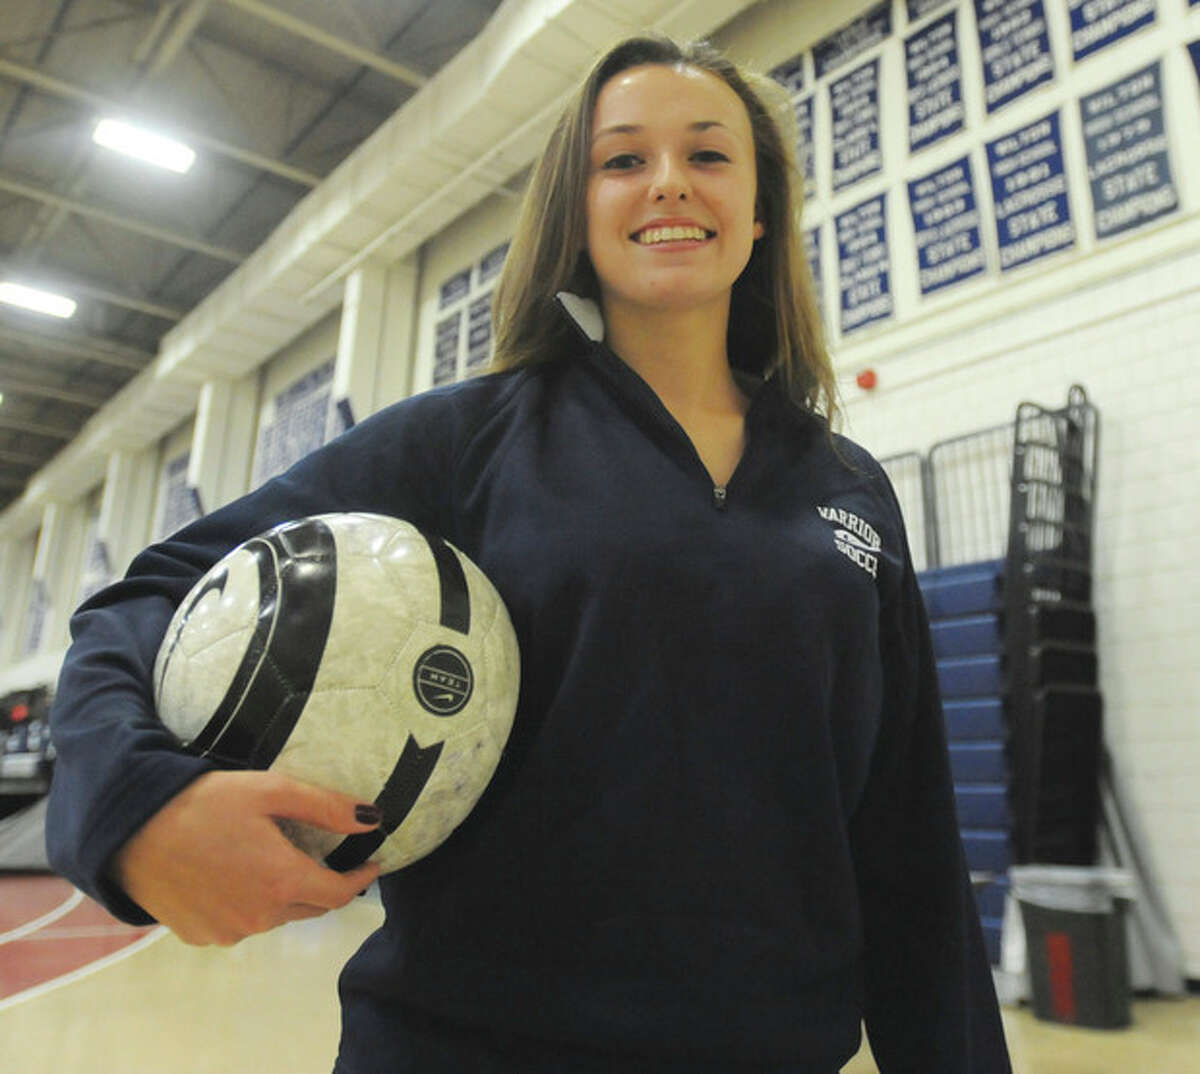 Hour photo/John Nash - Wilton's Lindsay Knutson is The Hour's All-Area MVP for girls soccer in 2013.